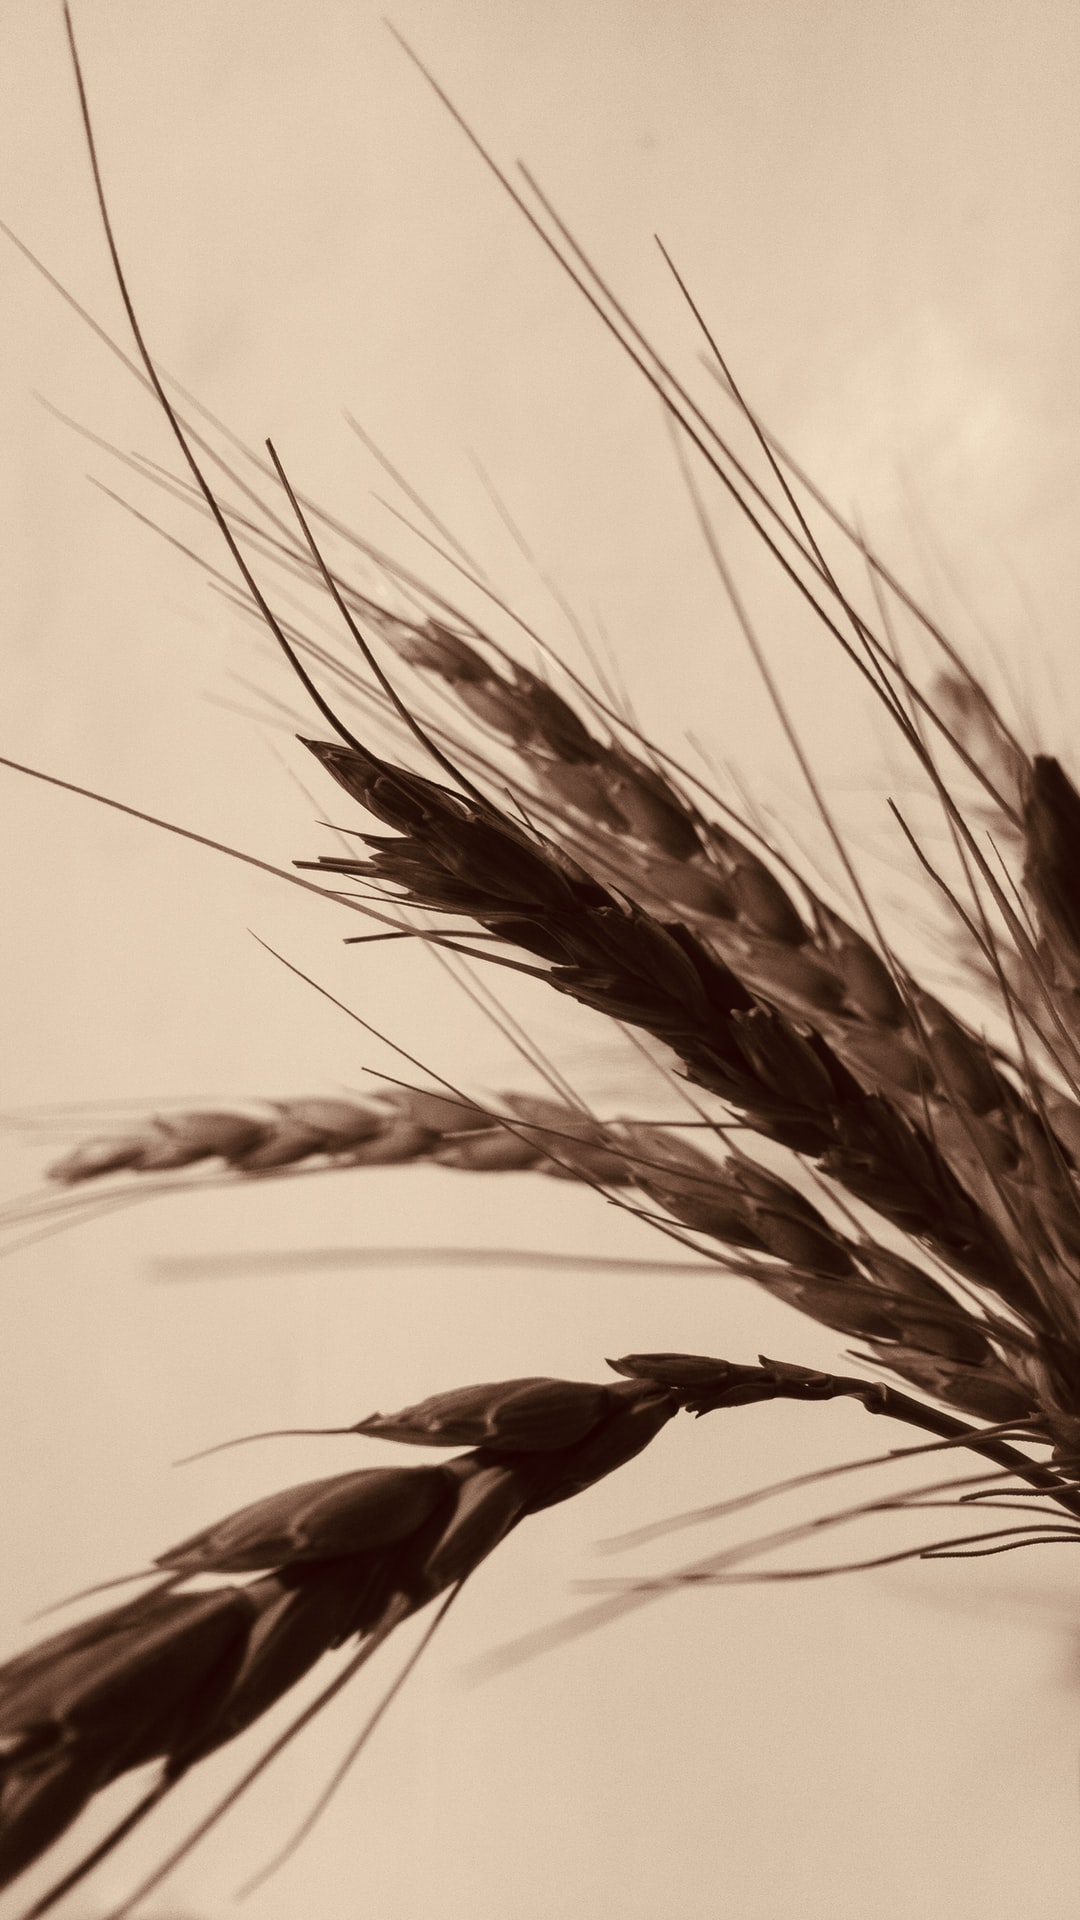 Wheat clusters